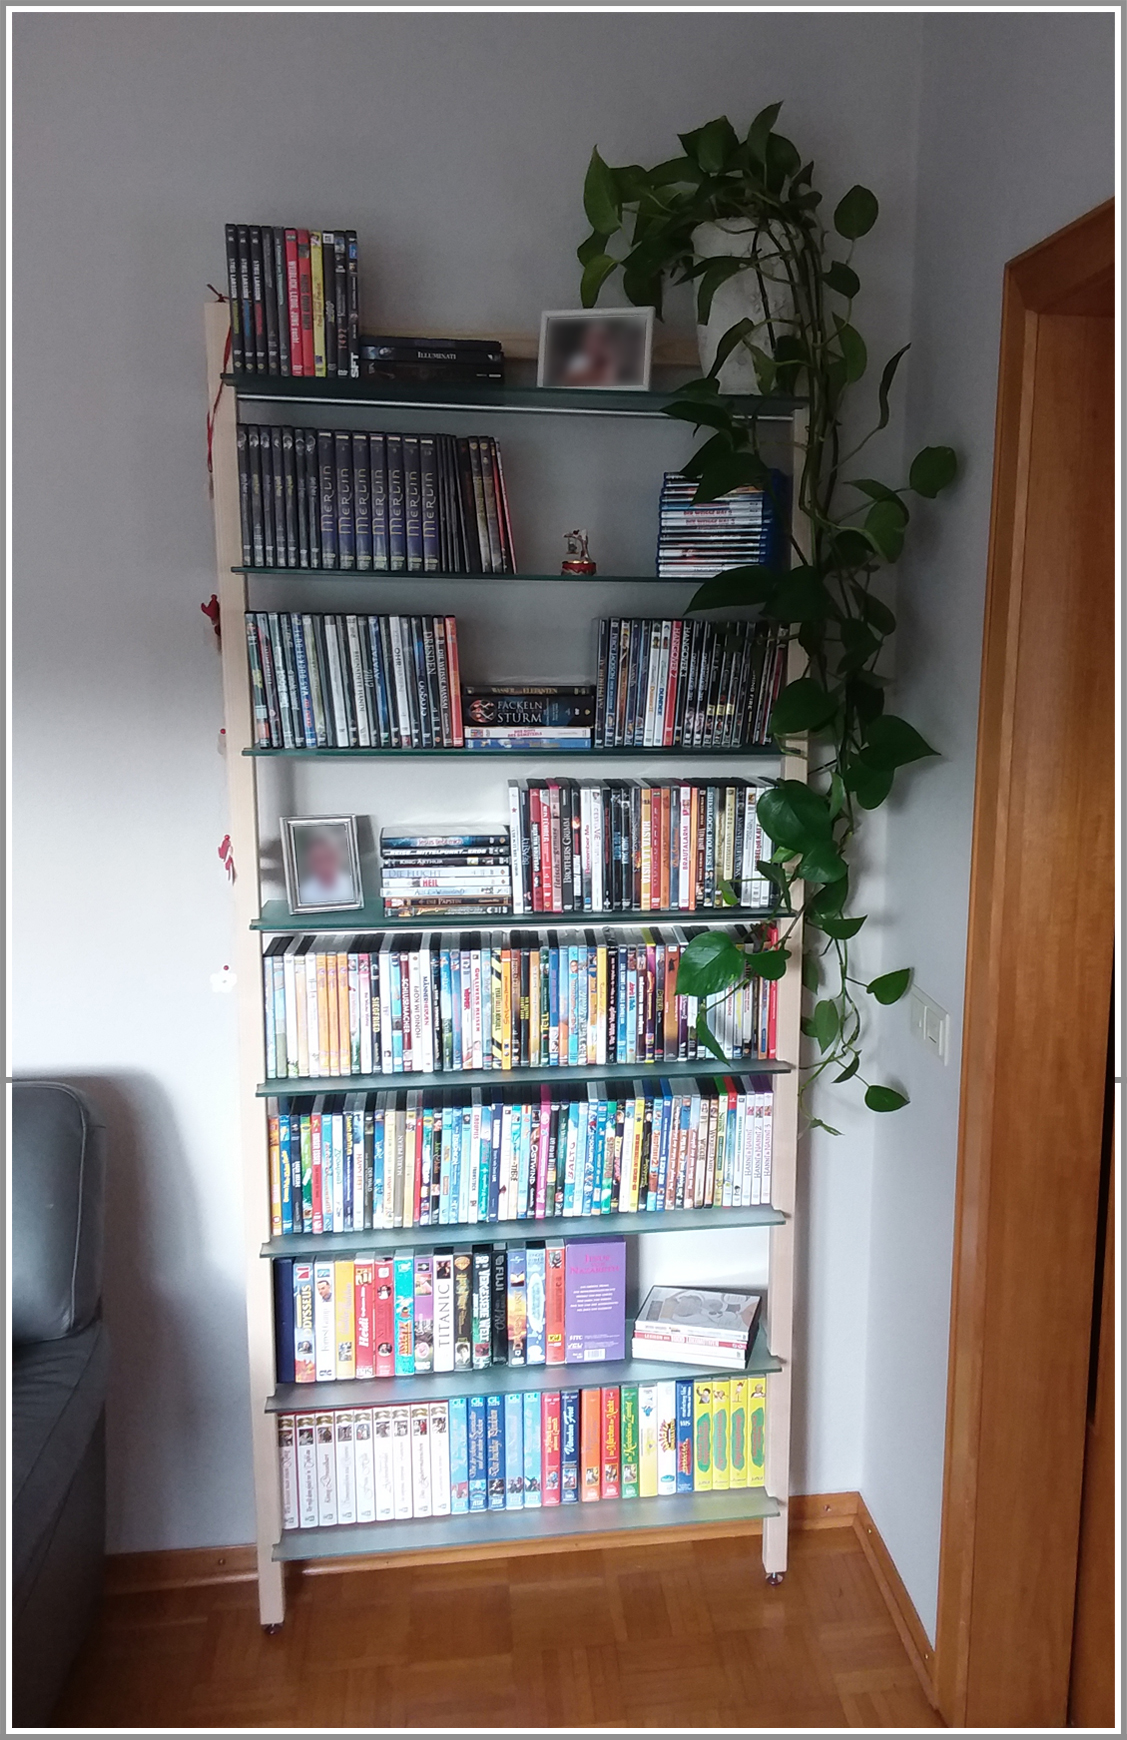 Kundenfoto - DVD/Bücherregal QUADRA